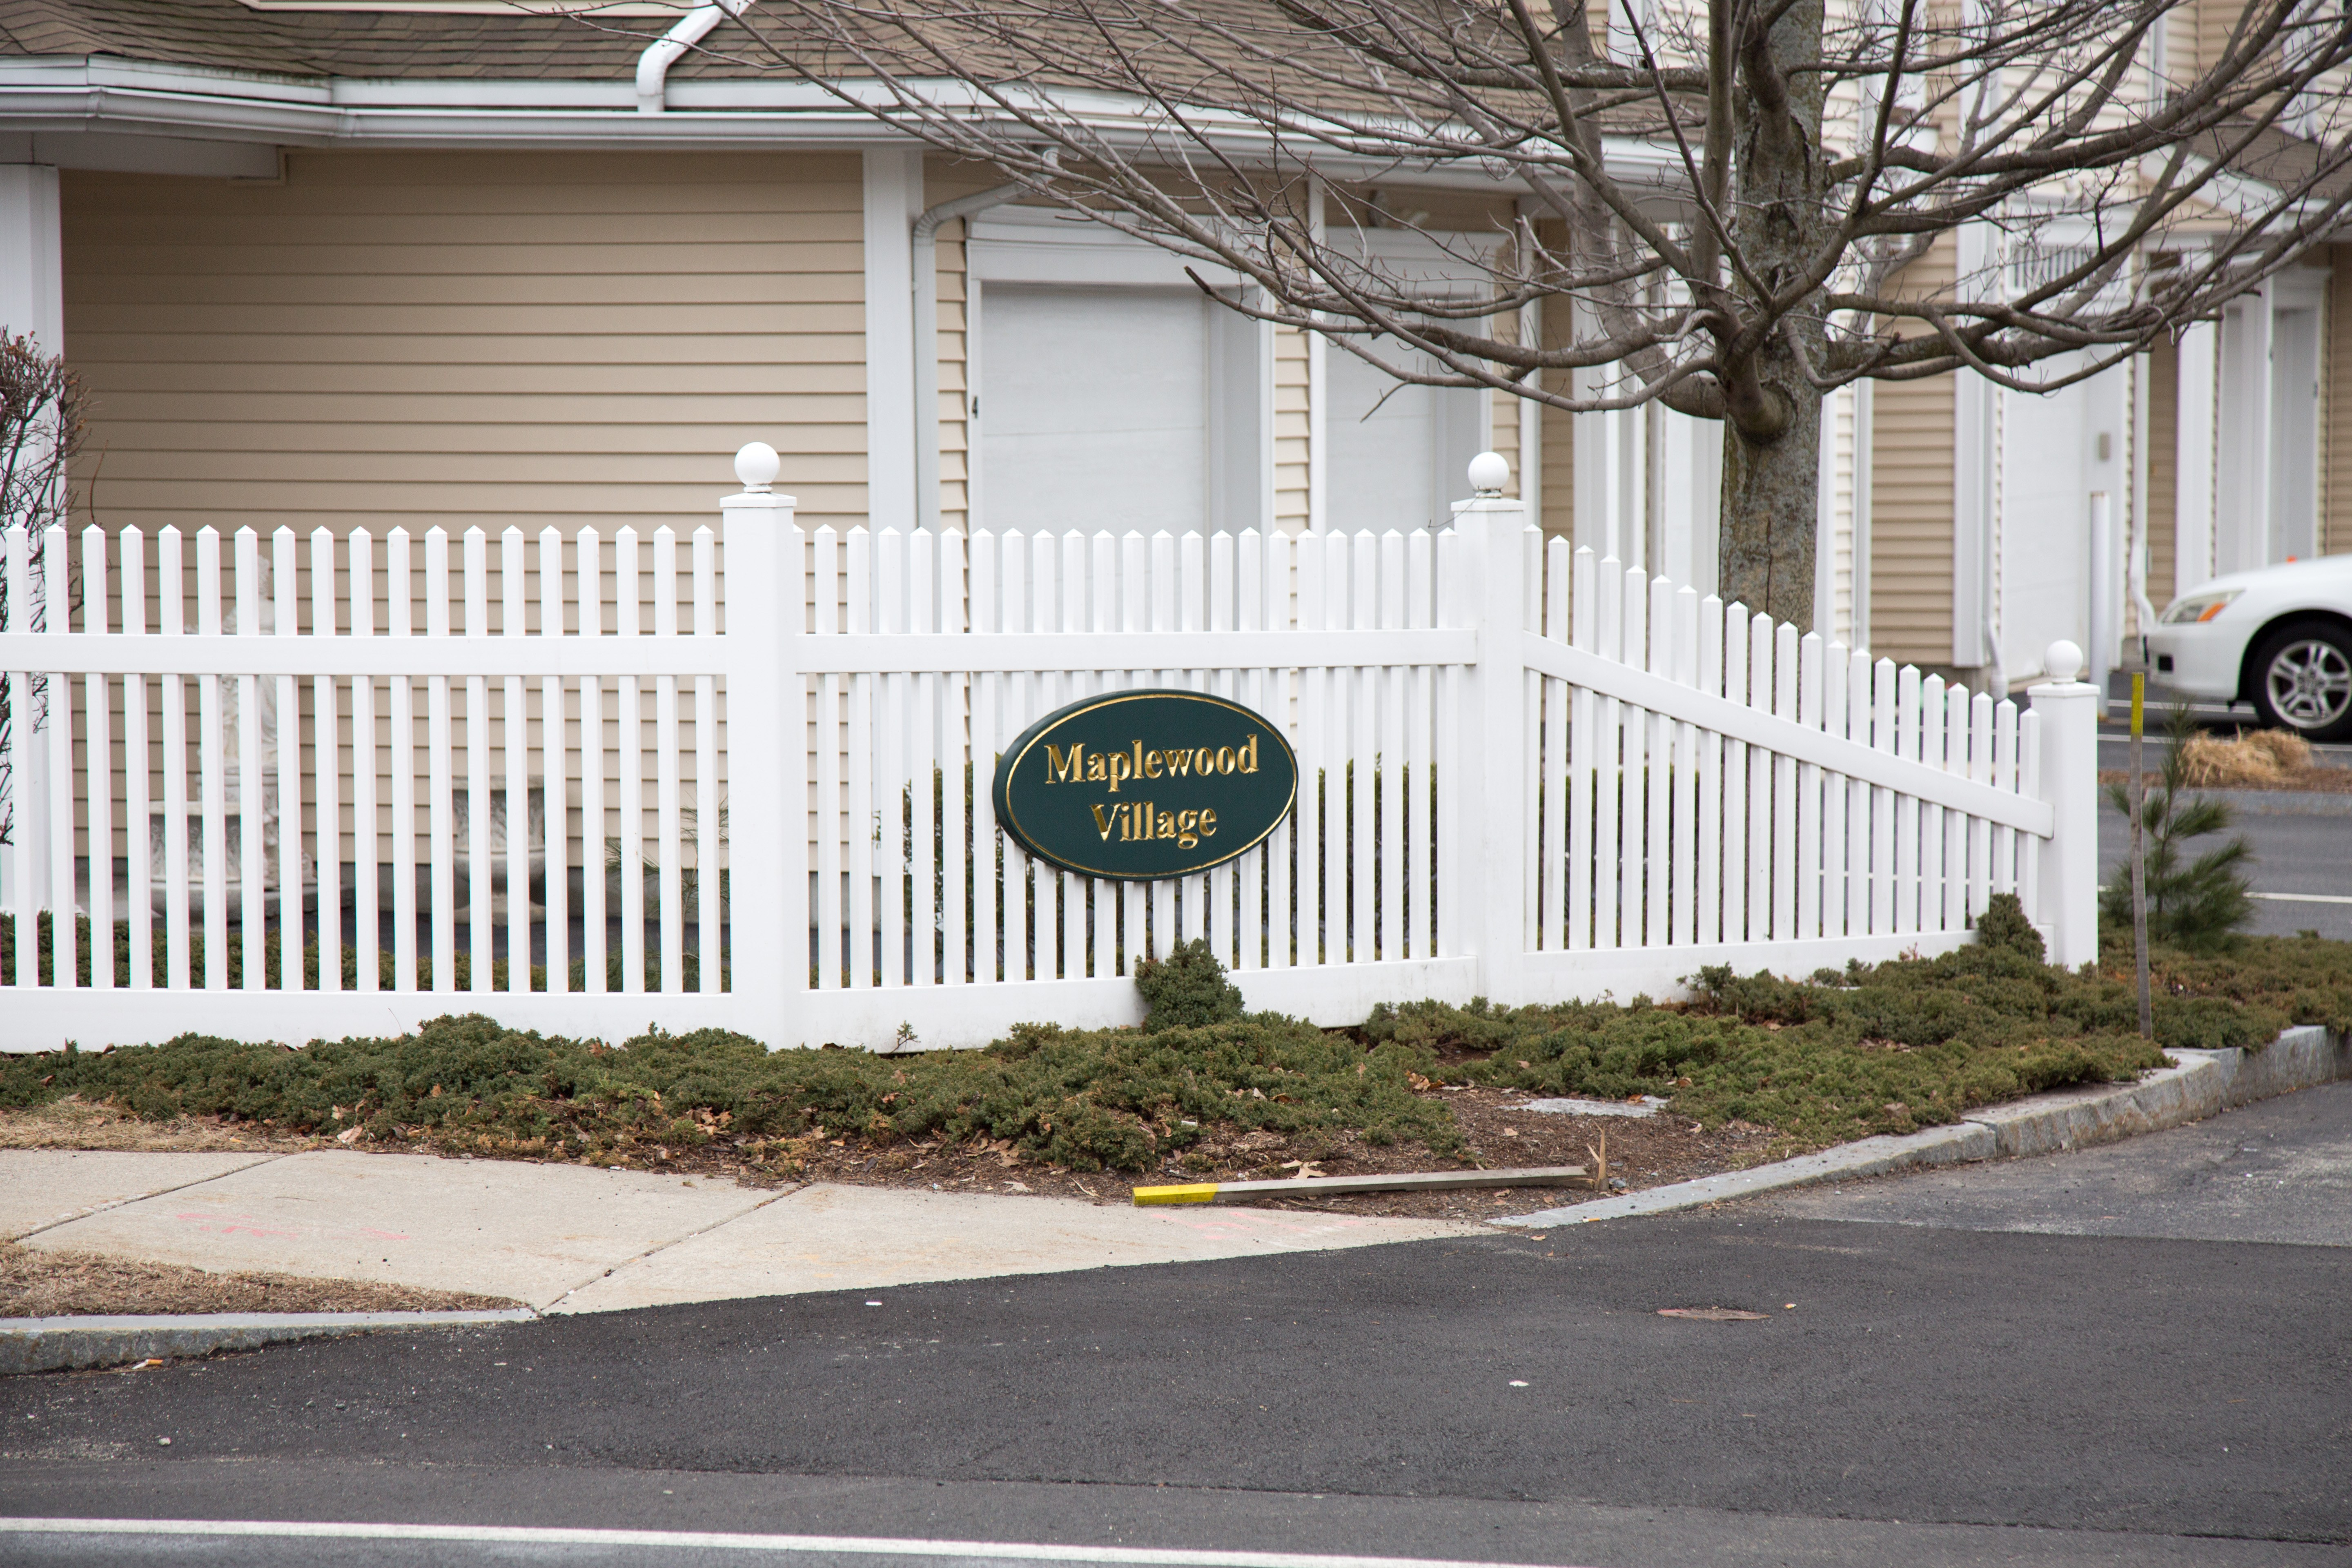 Maplewood Village Condos, Reading, MA - Current Listings & Pictures